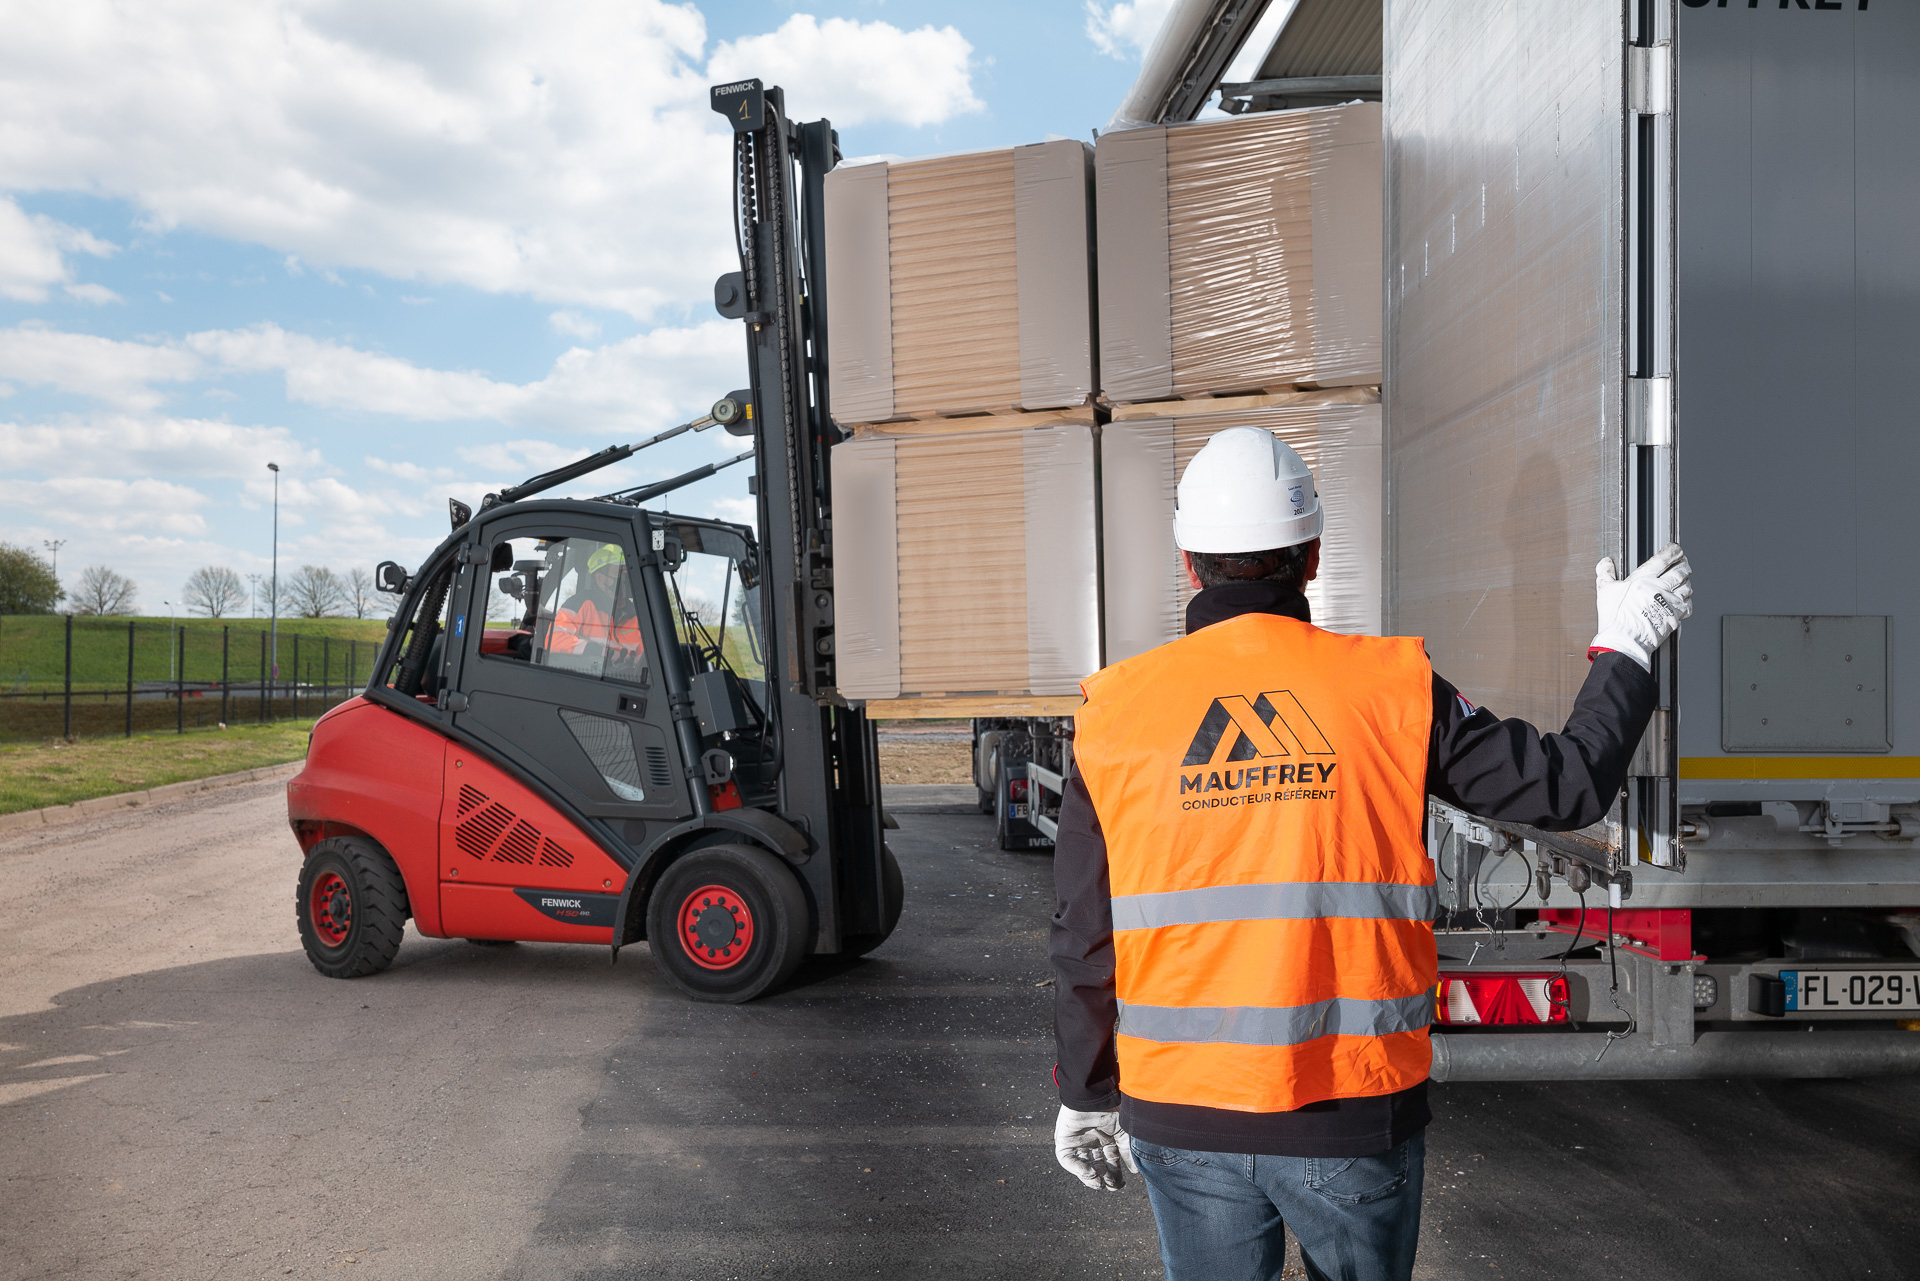 Groupe-Mauffrey-distribution-specialisee-Service-aux-industries-2